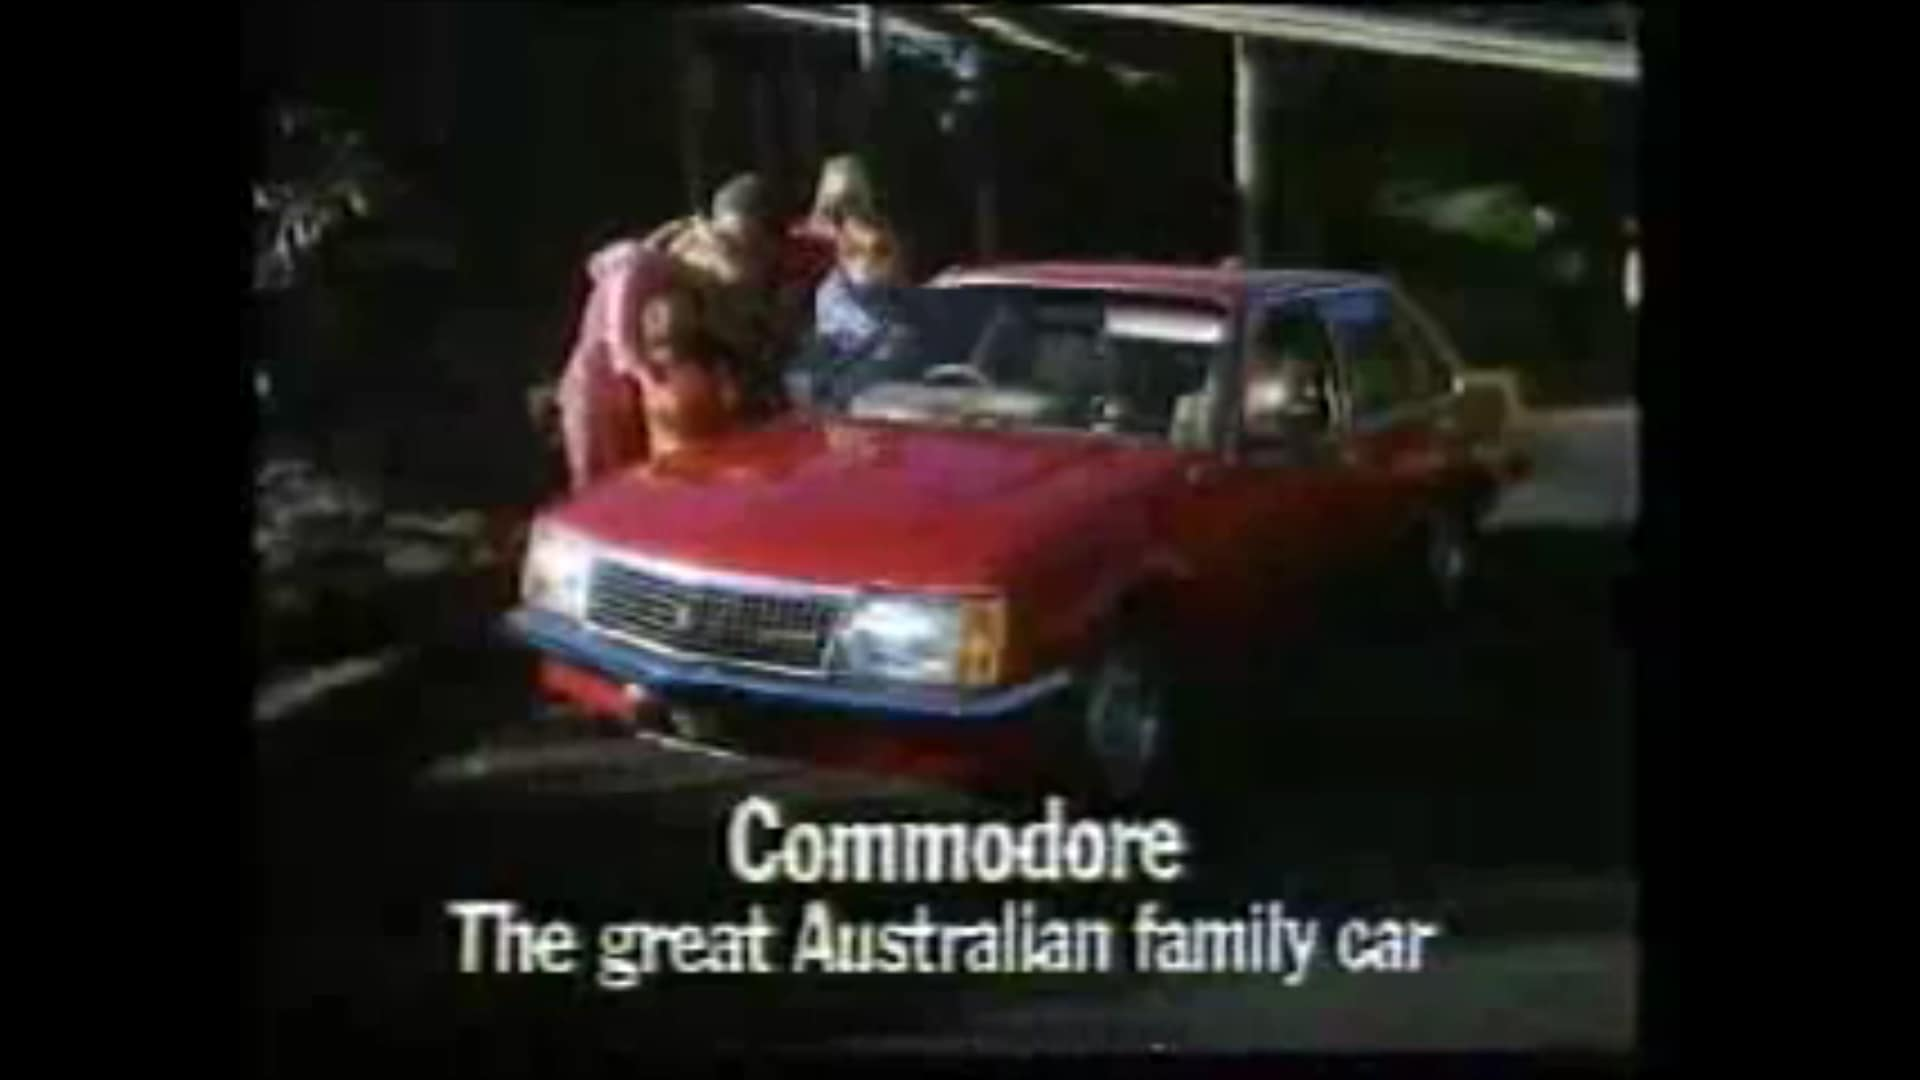 Holden Commodore ad from the 1980s